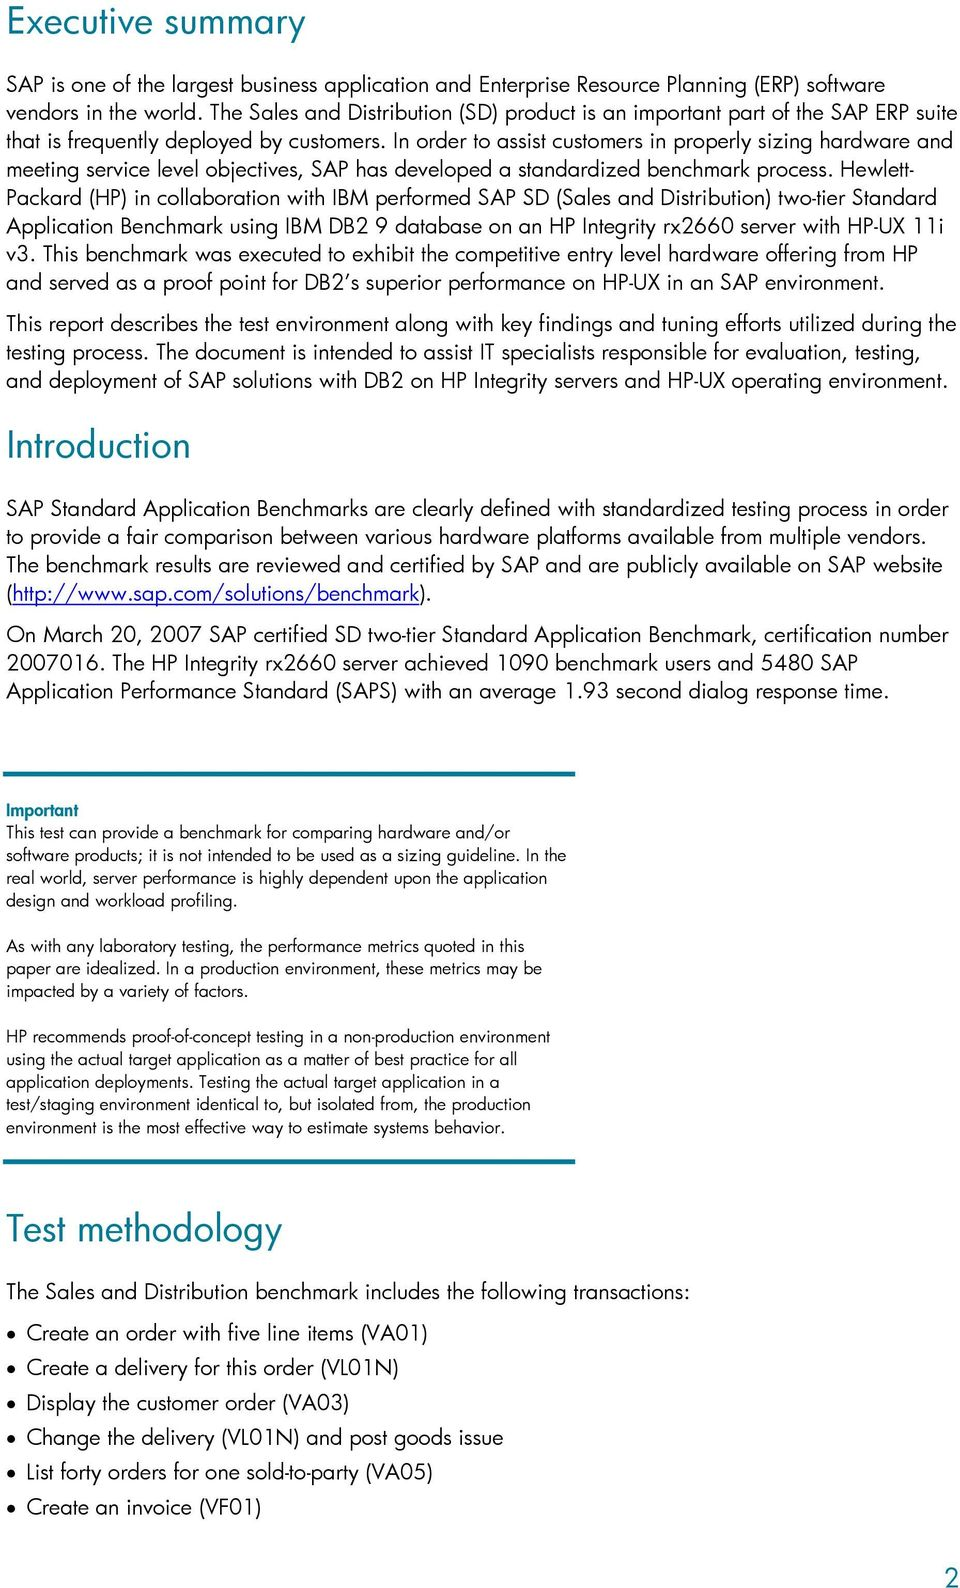 Benchmark report for SAP SD two-tier Standard Application